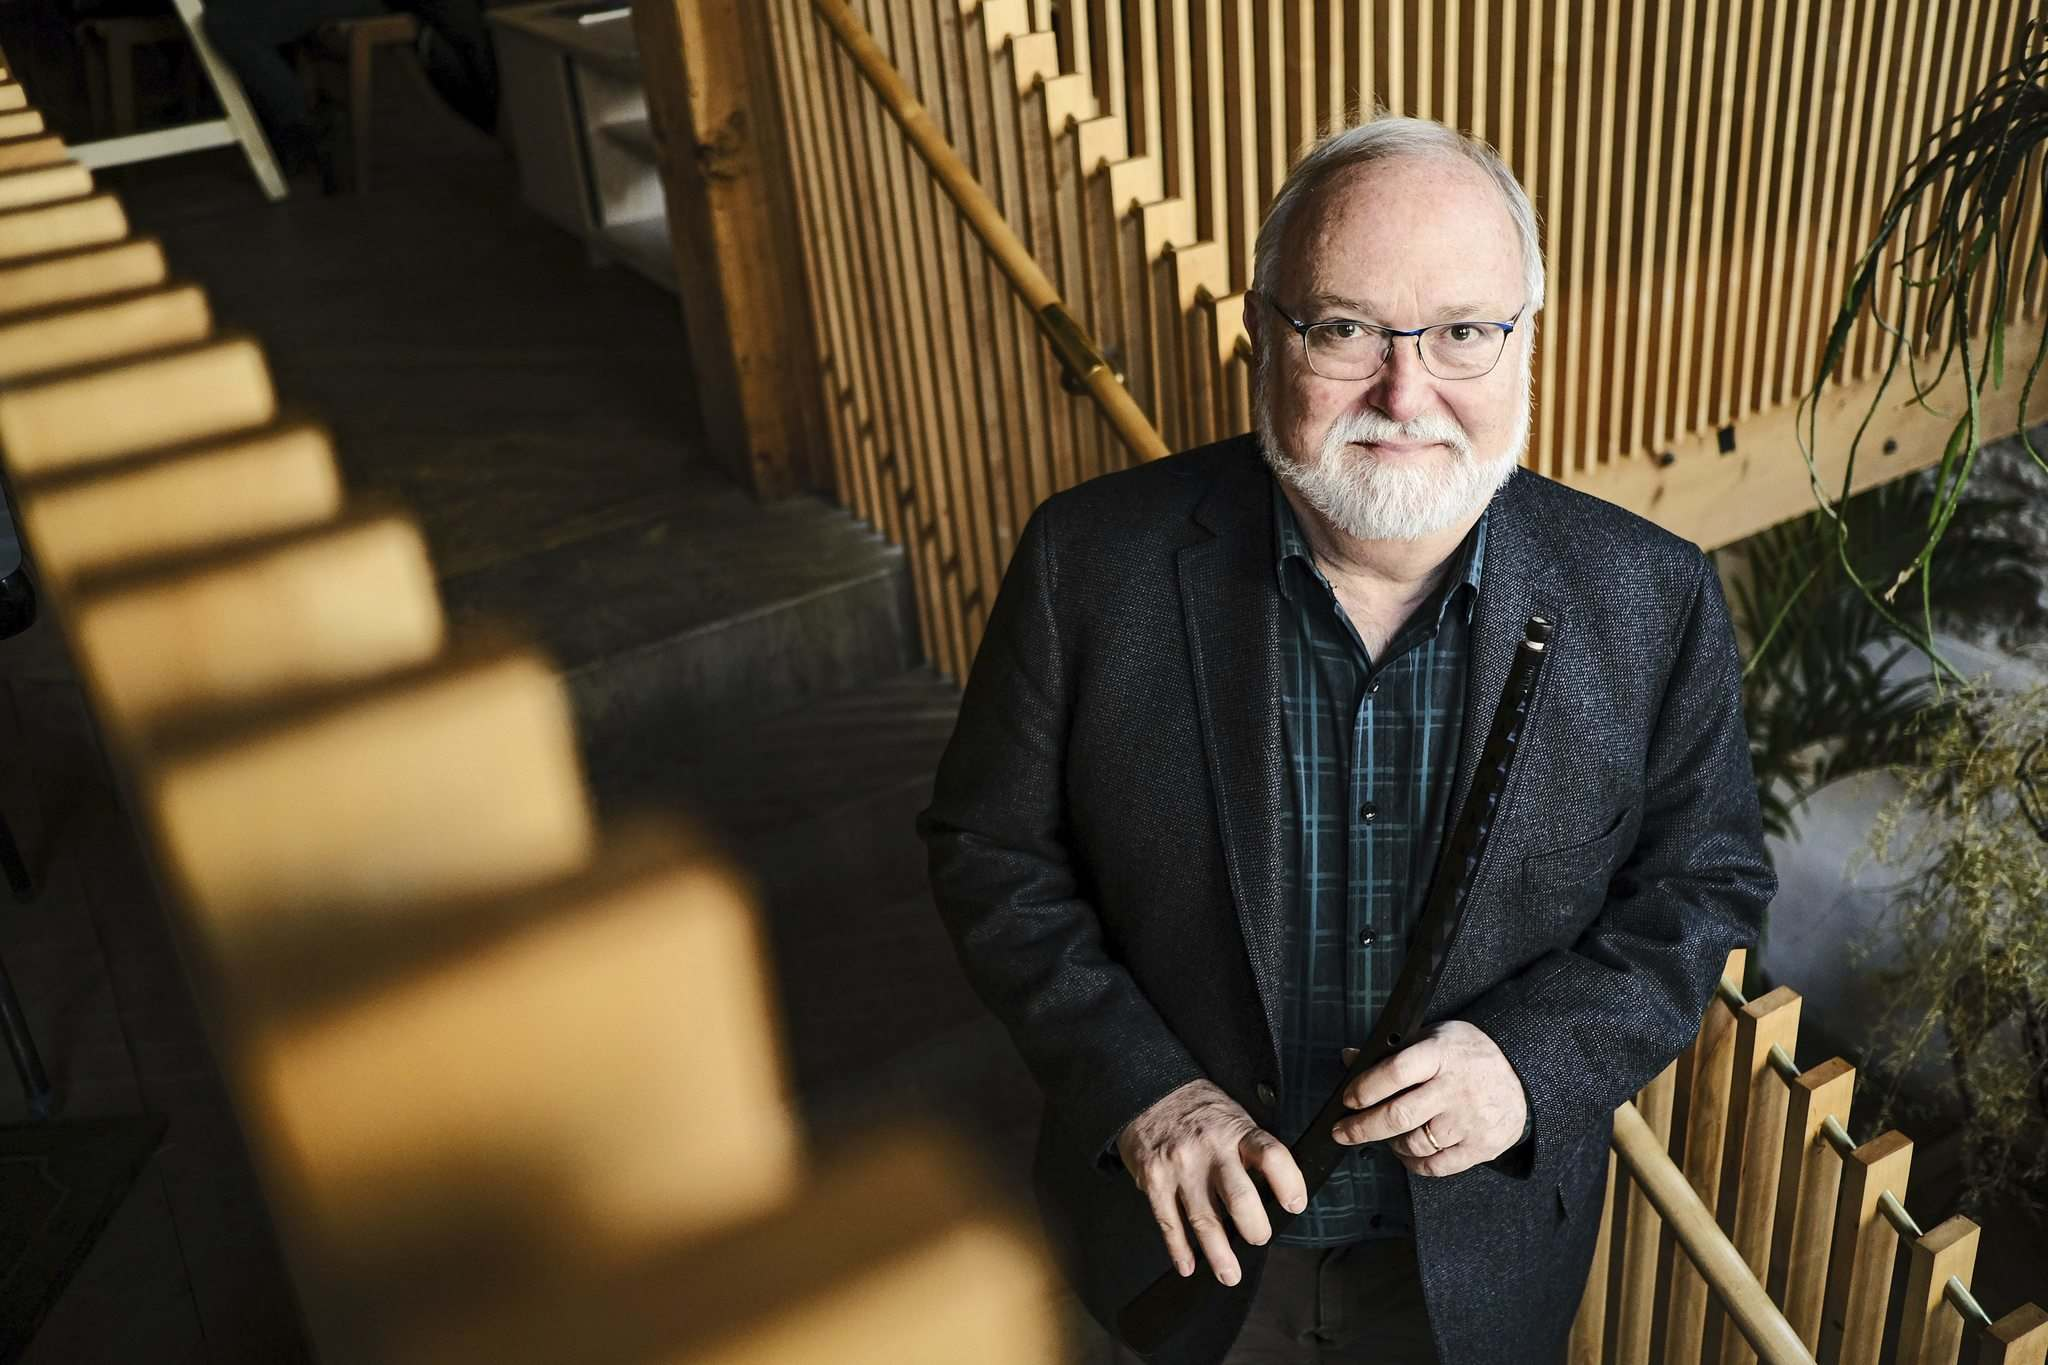 Bruce Dickey is in Winnipeg to perform with the Camerata Nova during their December 13 and 14th shows at Crescent Fort Rouge Community Church. (Mike Sudoma / Winnipeg Free Press)